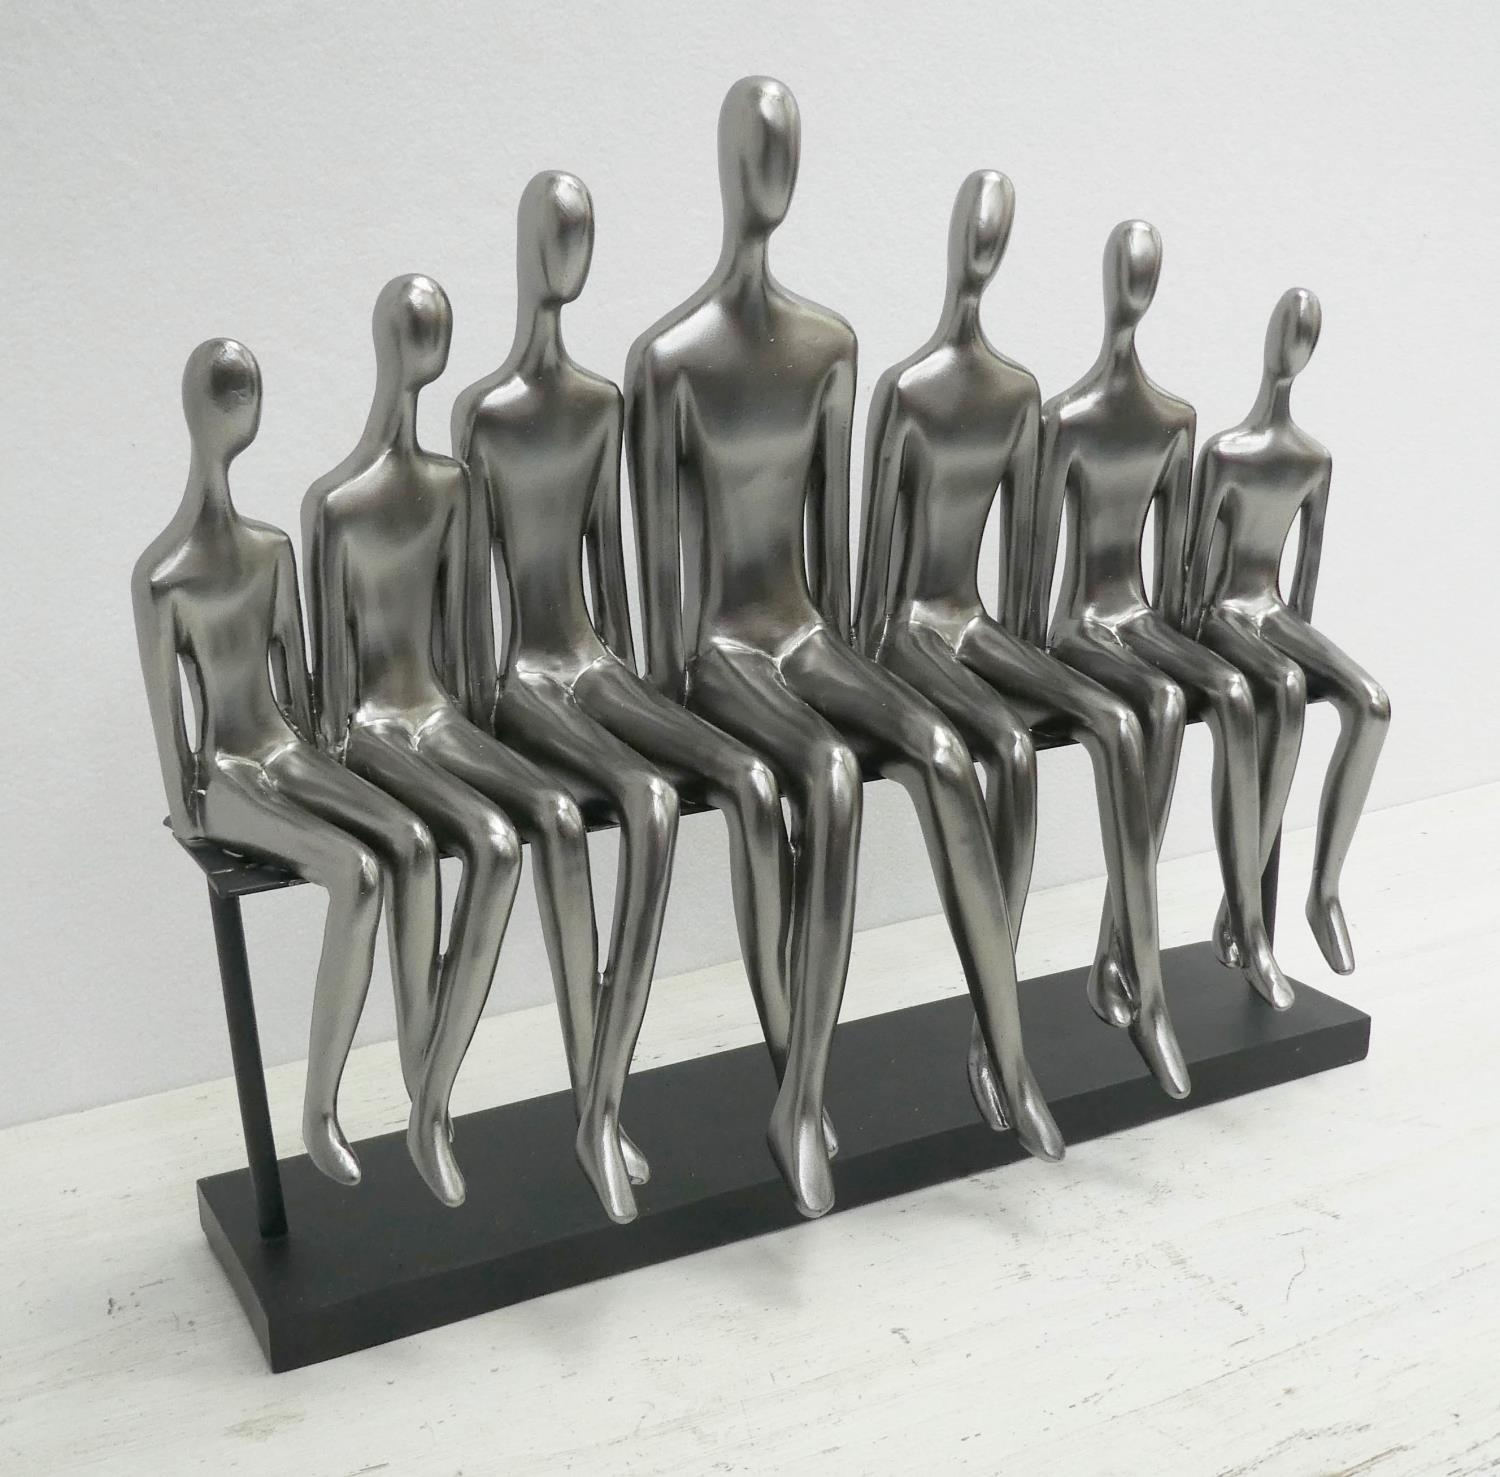 CONTEMPORARY SCHOOL, The Family, sculptural study, 34cm at tallest. - Image 2 of 4